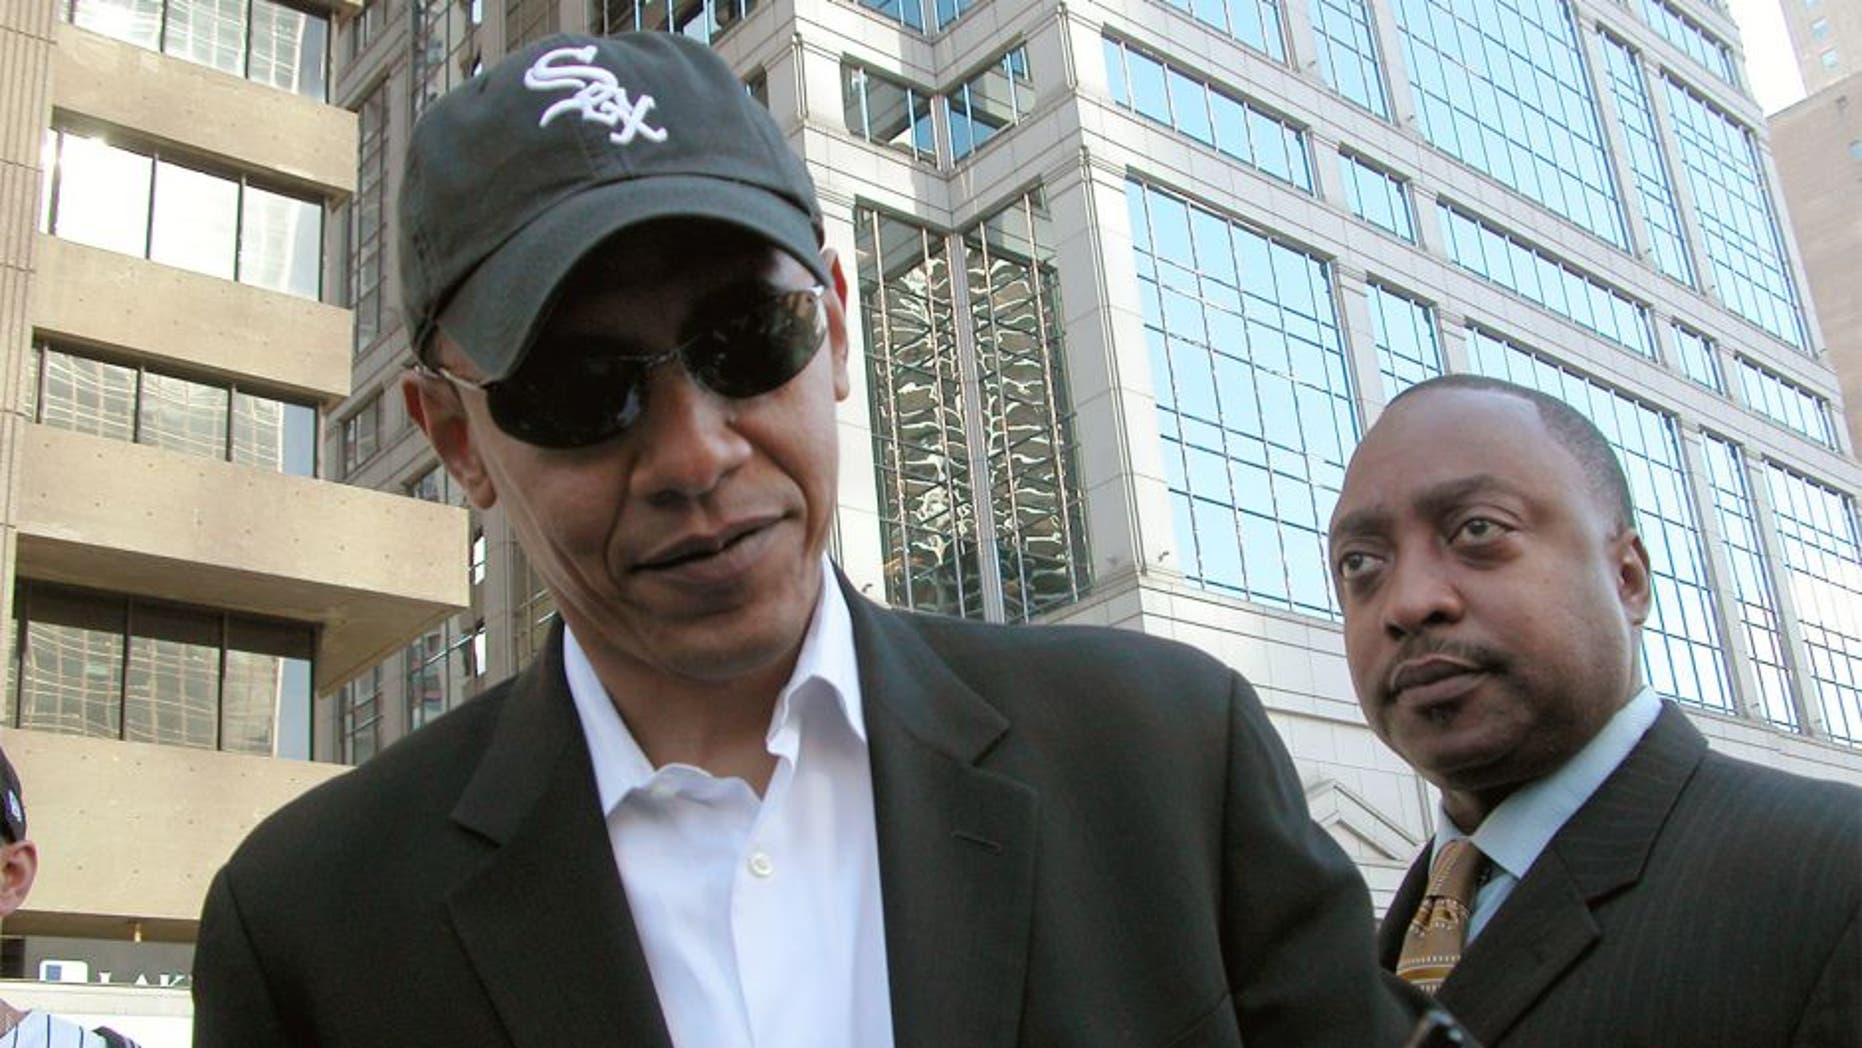 Barack Obama at the White Sox World Series Ticker Tape Parade in Chicago, IL, October 28, 2005.